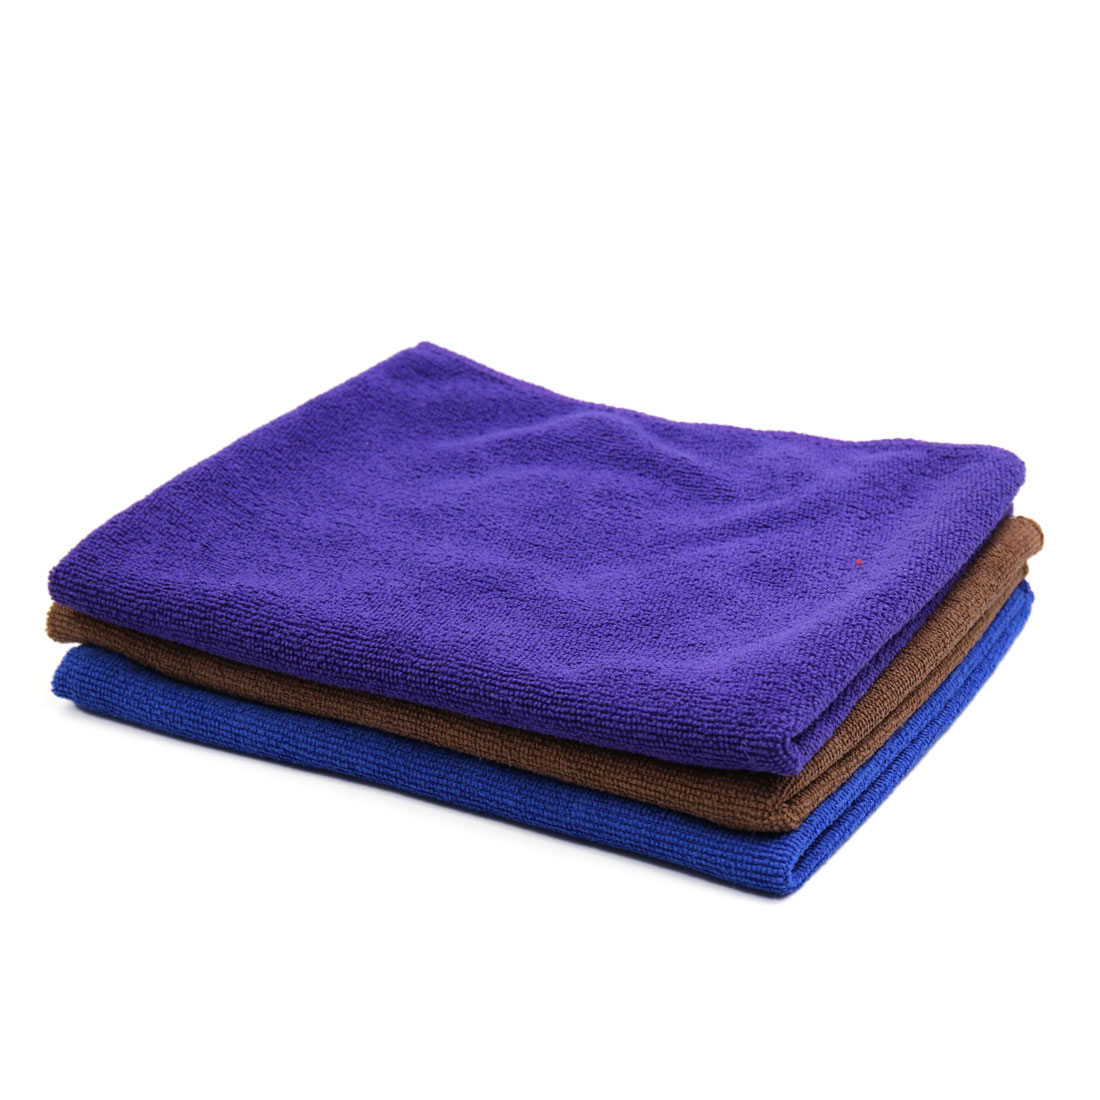 3 Pcs High Absorbing Car Clean Cloth Towel No-scratched for Car Auto-vehicle Blue Purple Coffee Color